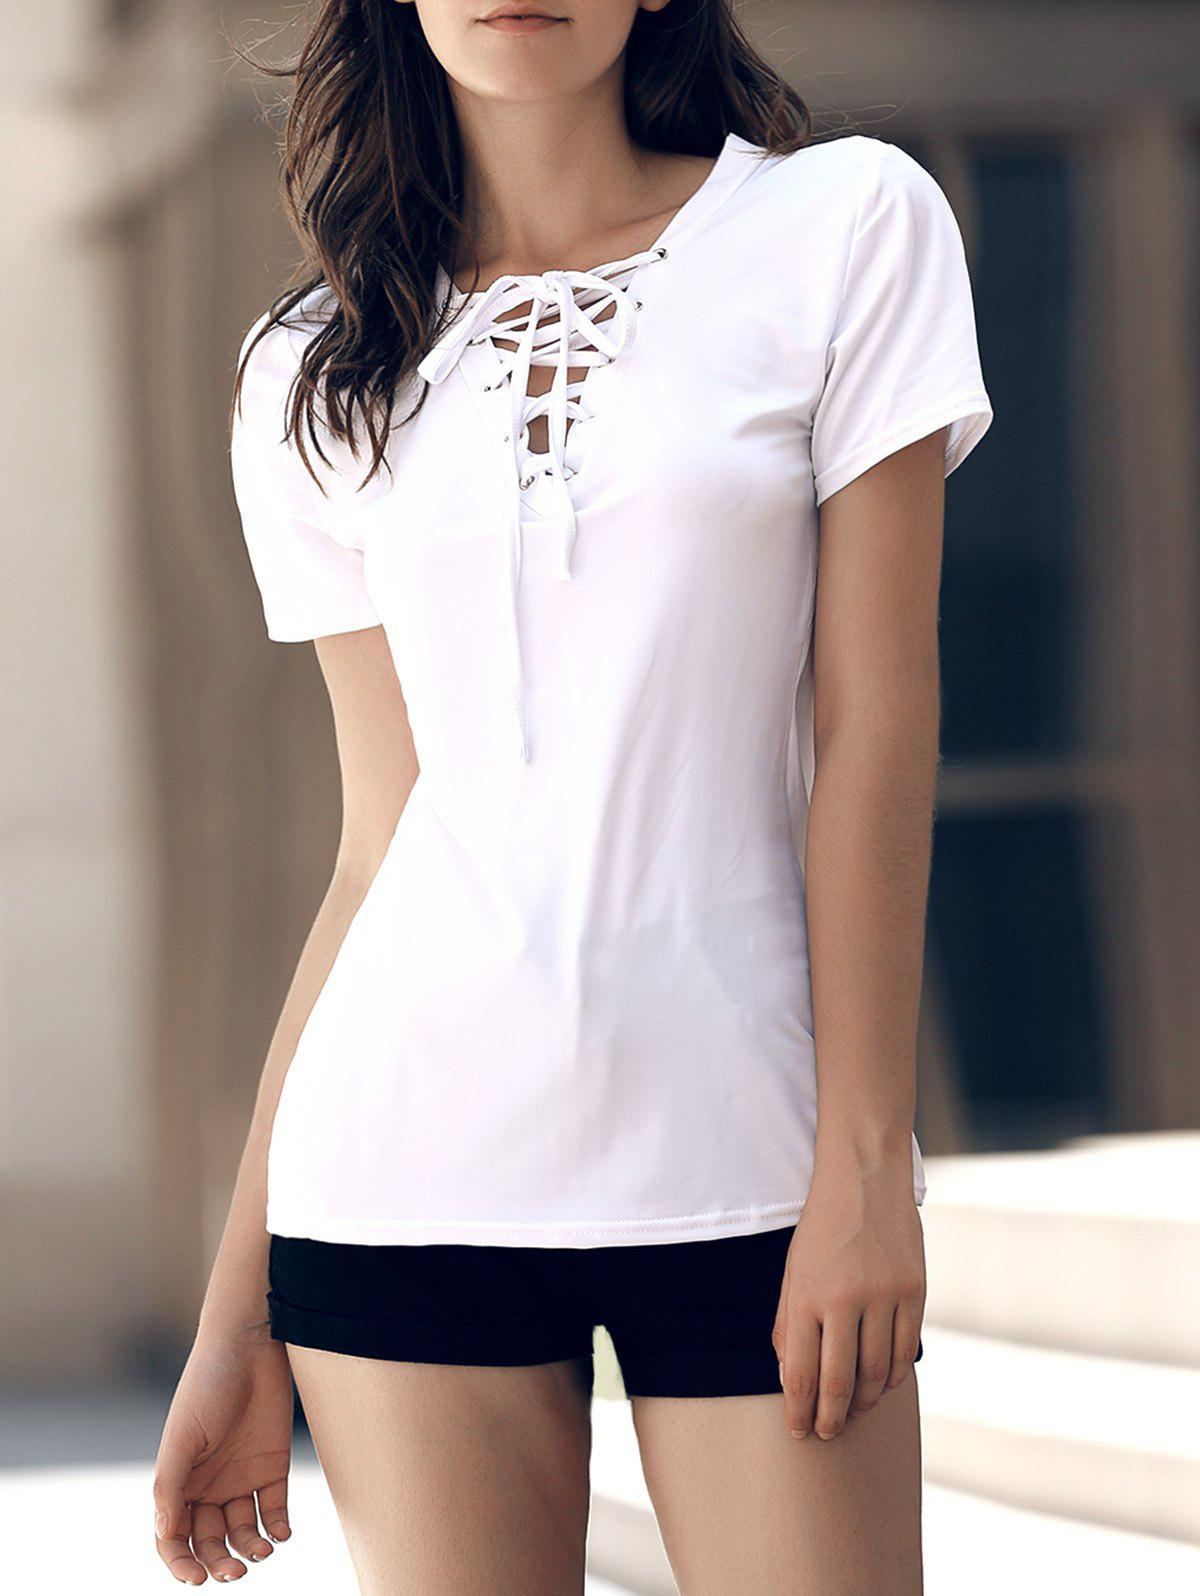 Stylish Women's V-Neck Short Sleeves Lace-Up T-Shirt - WHITE S